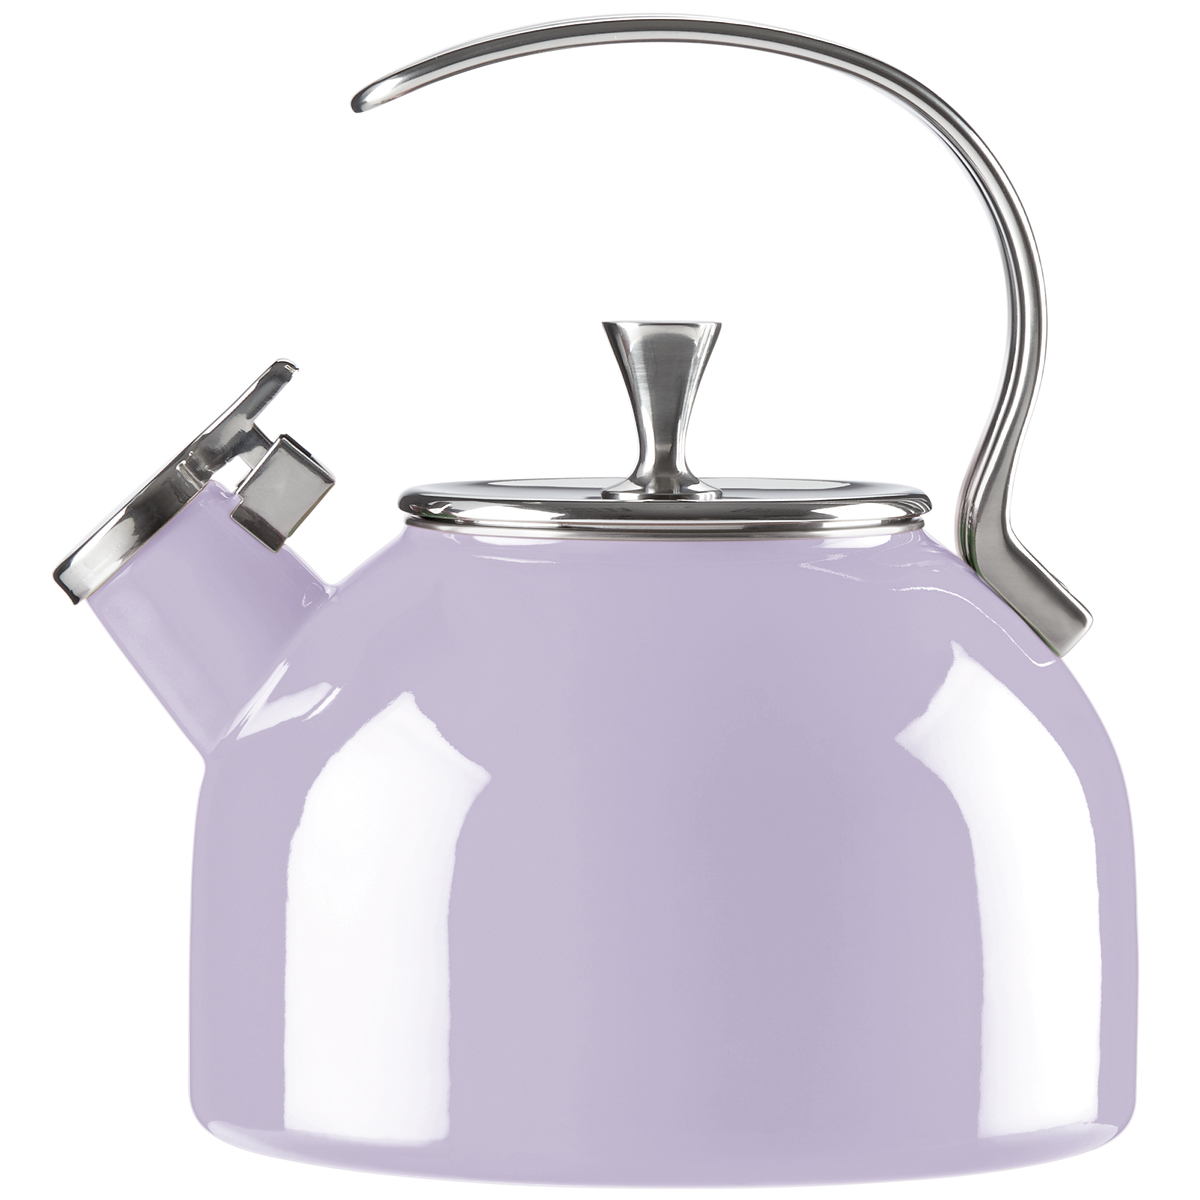 Kate Spade New York, Lenox Nolita Light Lilac Kettle